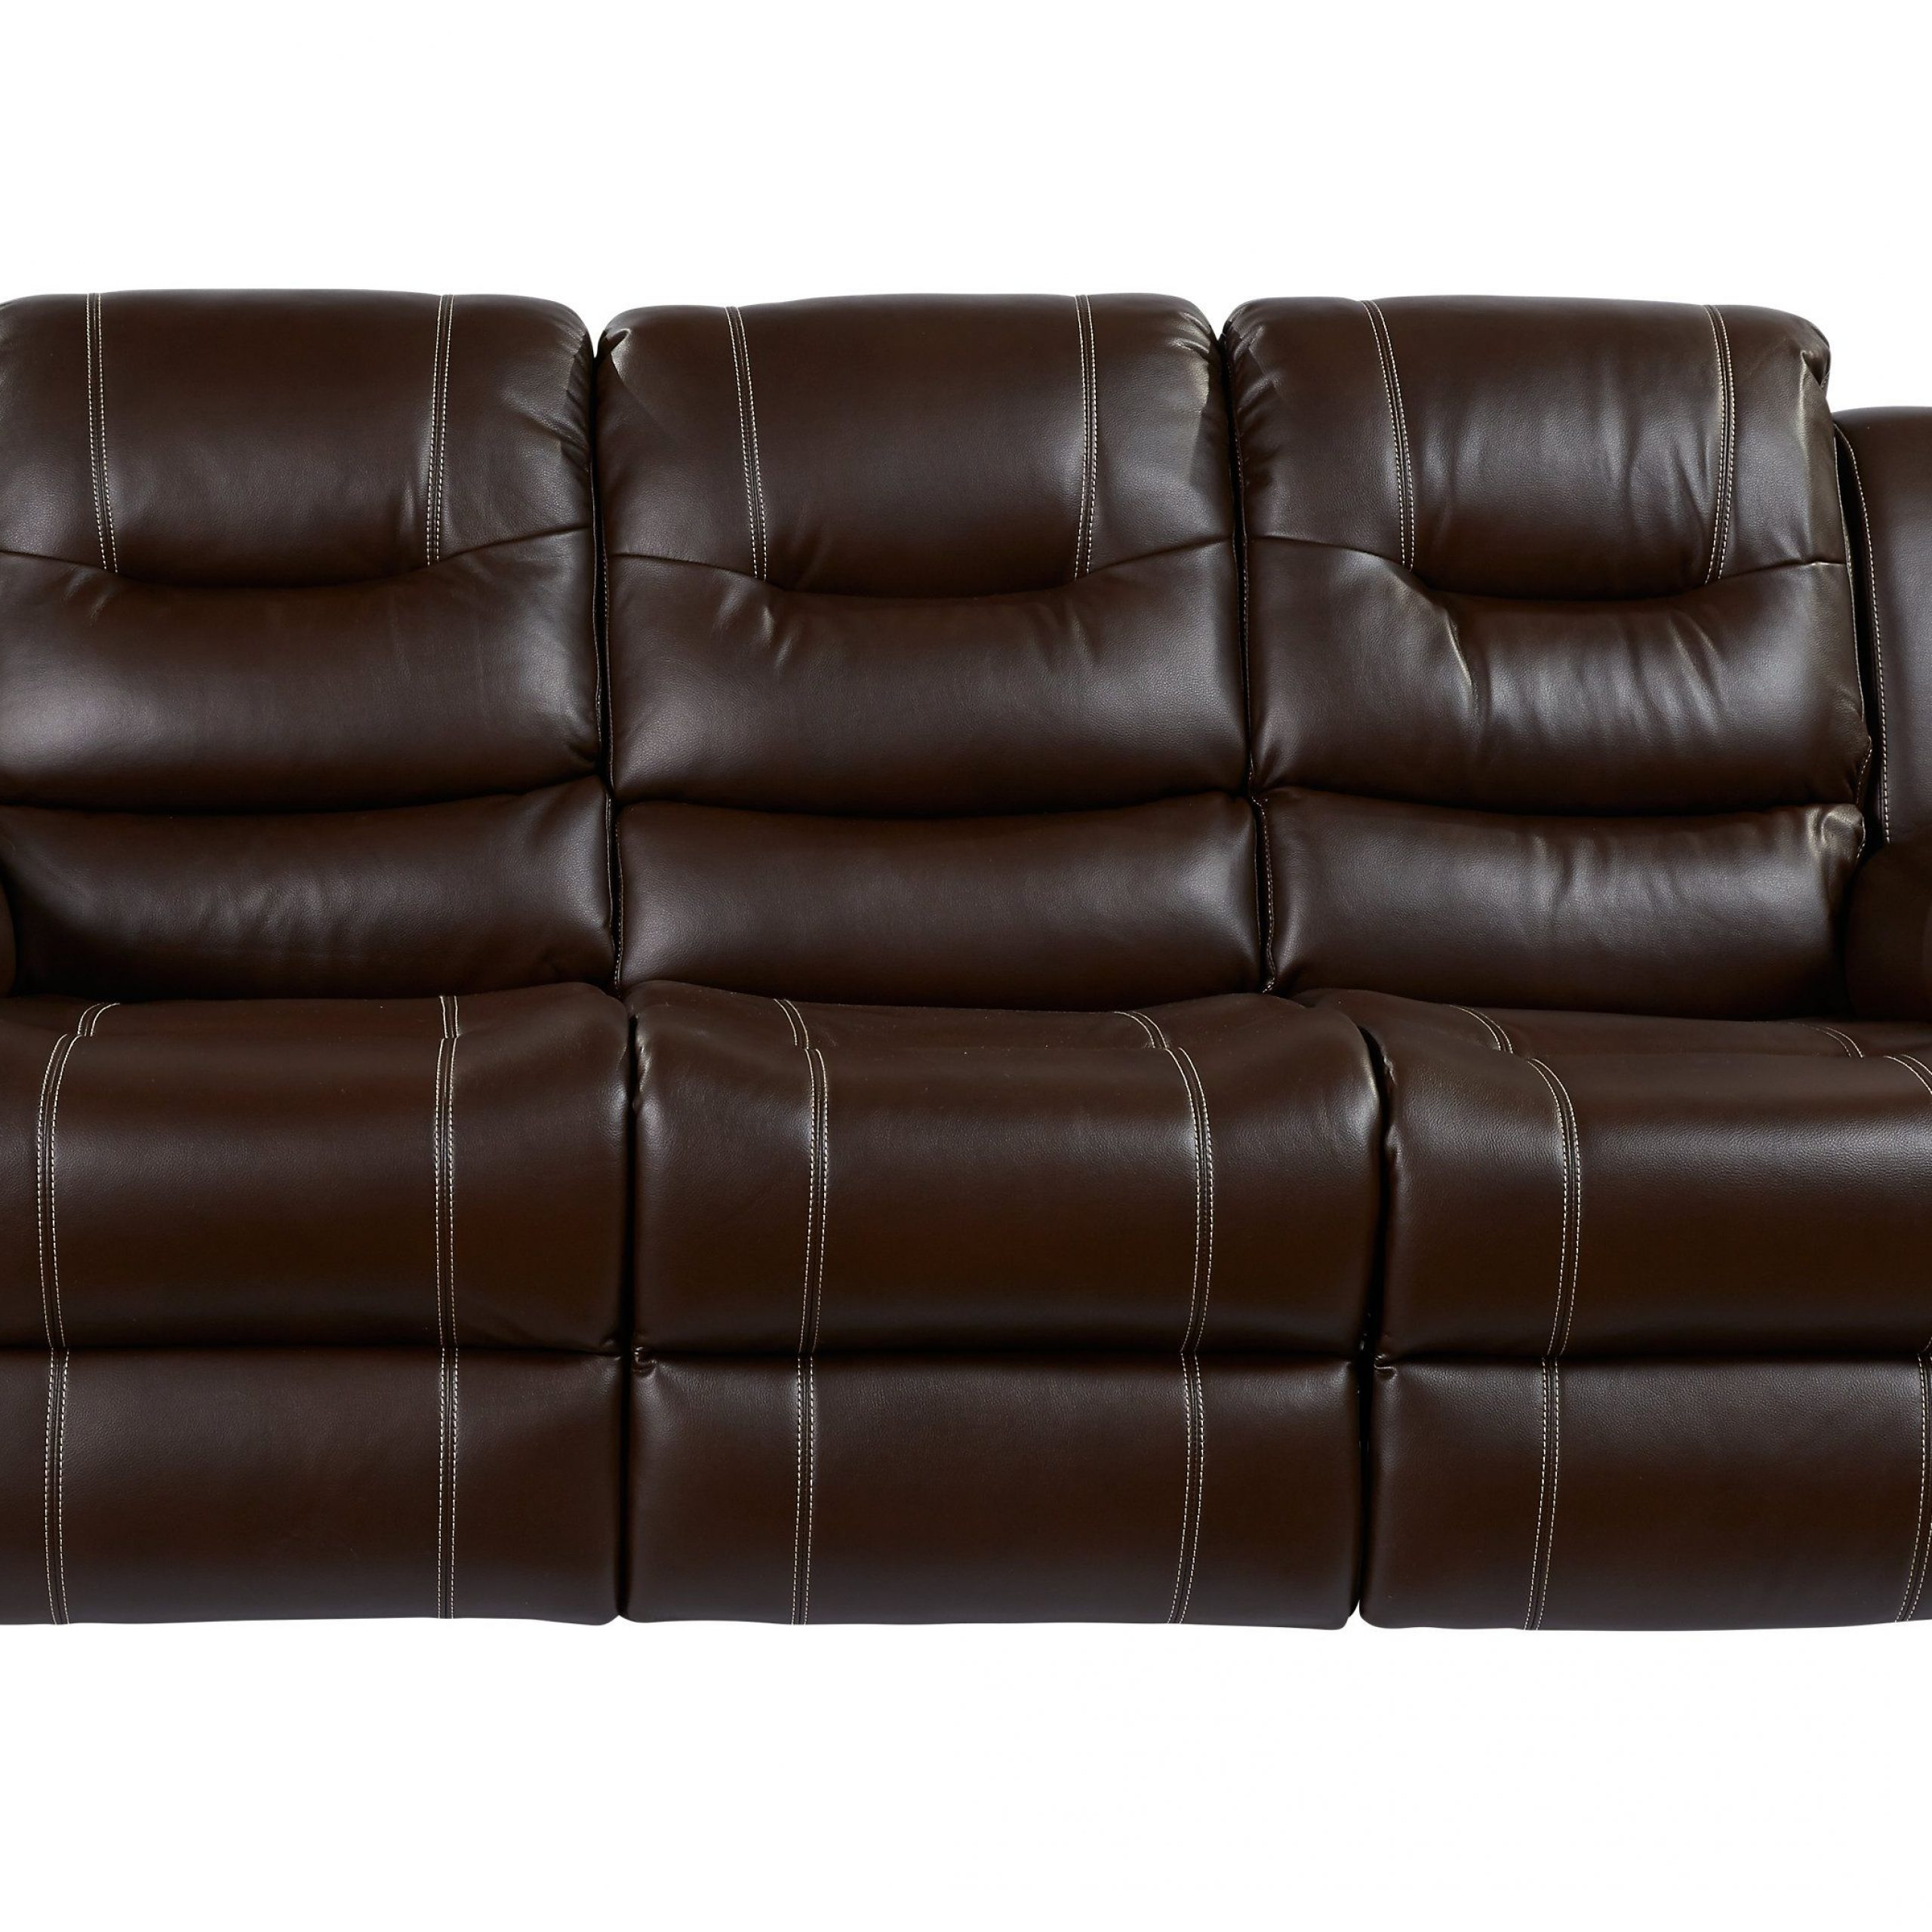 Brown Leather Sofa Living Room, Reclining Sofa, Affordable In Marco Leather Power Reclining Sofas (View 7 of 15)